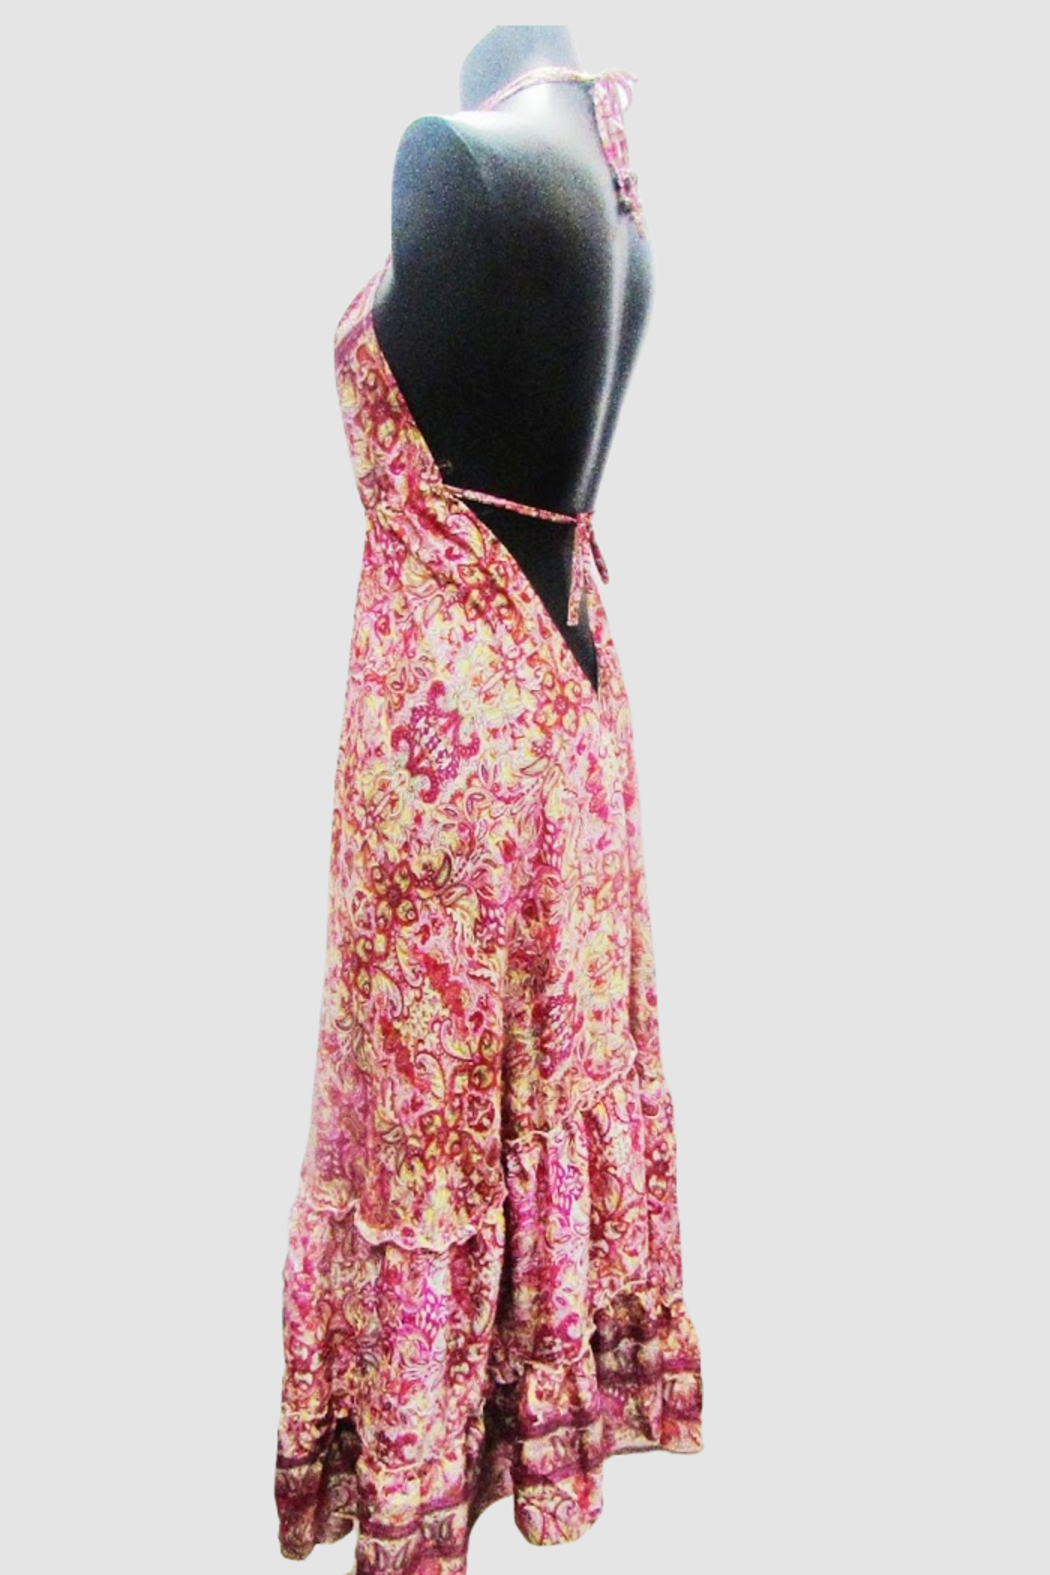 India Boutique Bohemian Rhapsody Halter Dress - Pink/Red Paisley - Side Cropped Image